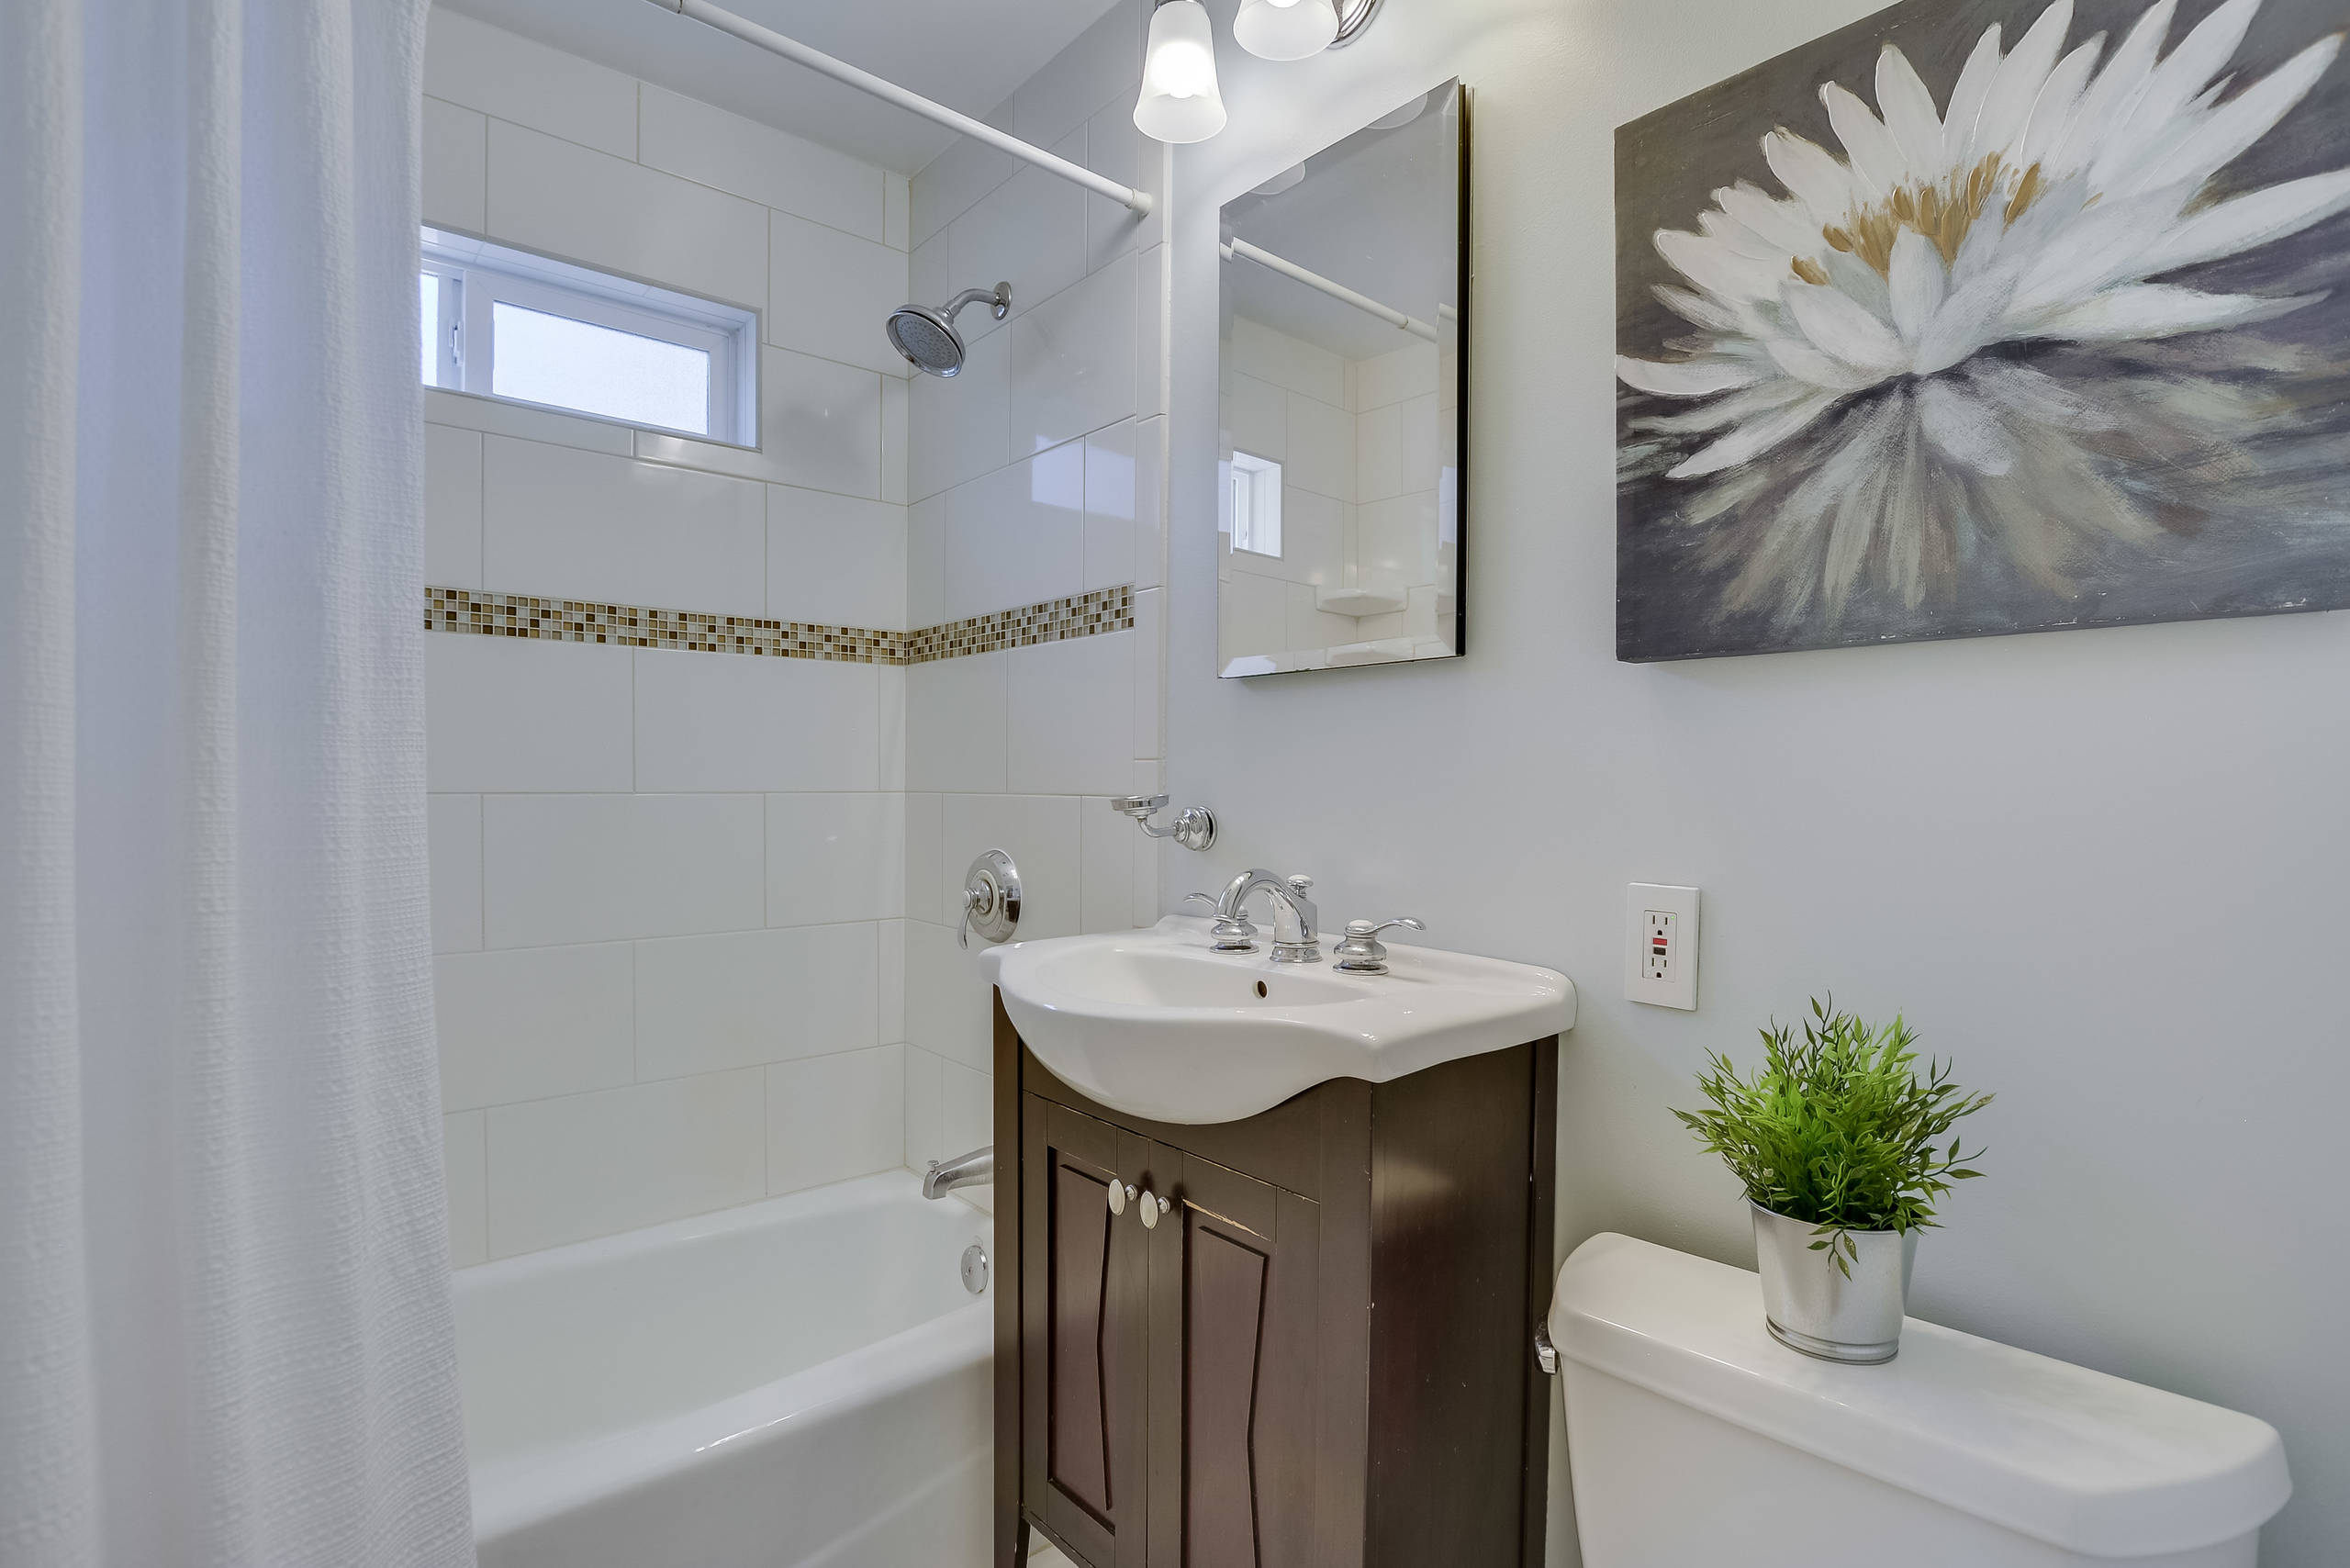 75 Beautiful Shower Curtain With Brown Cabinets Pictures Ideas December 2020 Houzz